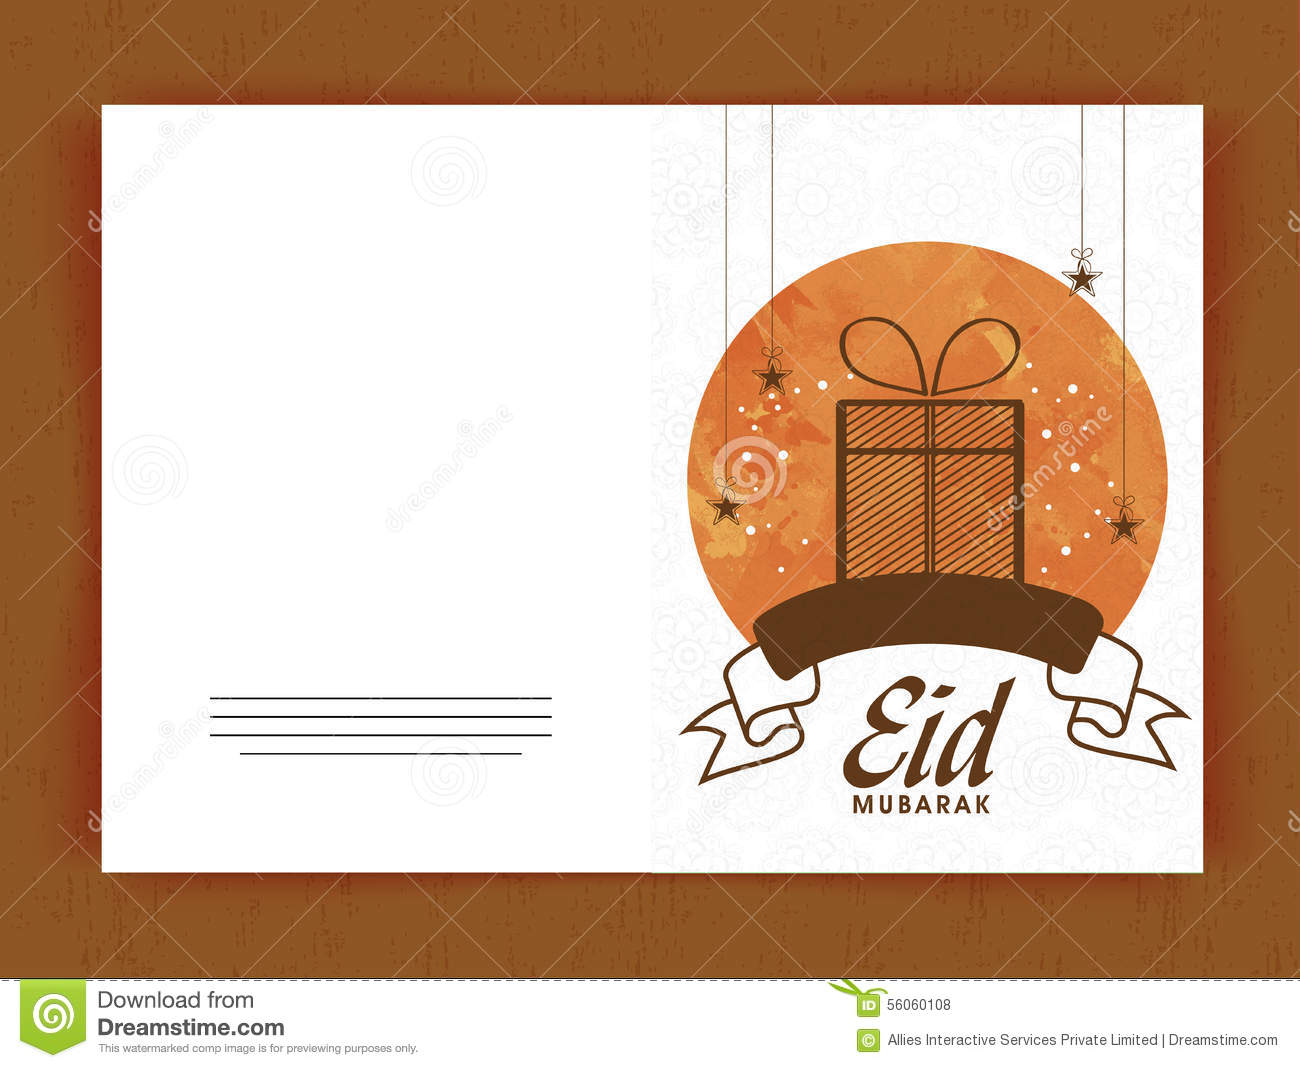 Greeting card with gift for eid mubarak celebration stock download greeting card with gift for eid mubarak celebration stock illustration illustration of background m4hsunfo